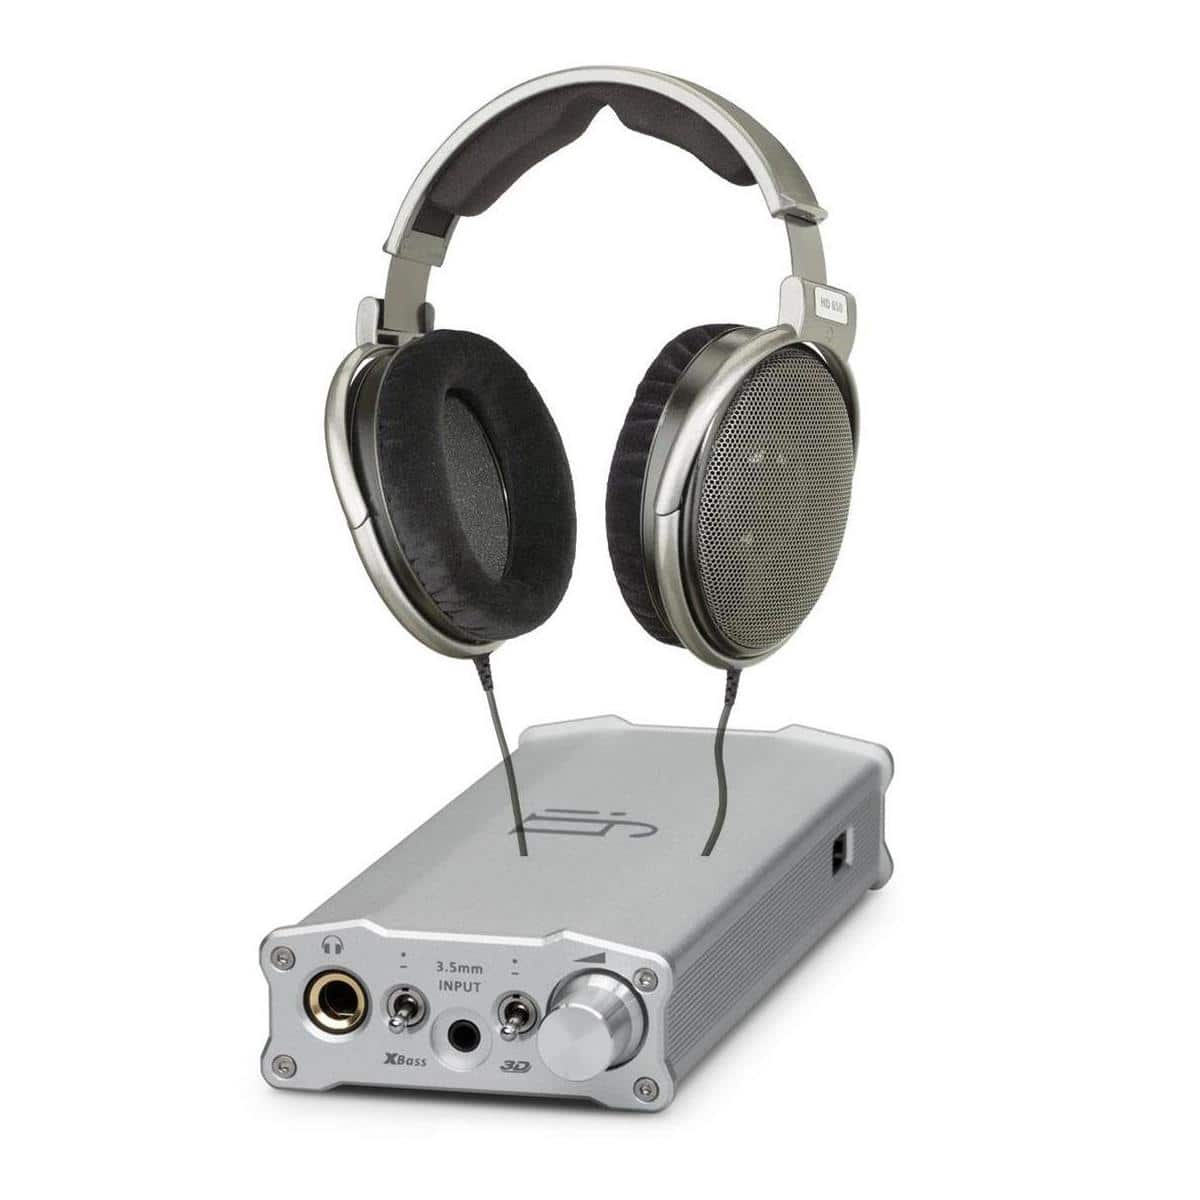 Sennheiser HD-650 Open Headphone + iFi Micro iDSD Portable Headphone DAC & Amplifier $669 + free shipping